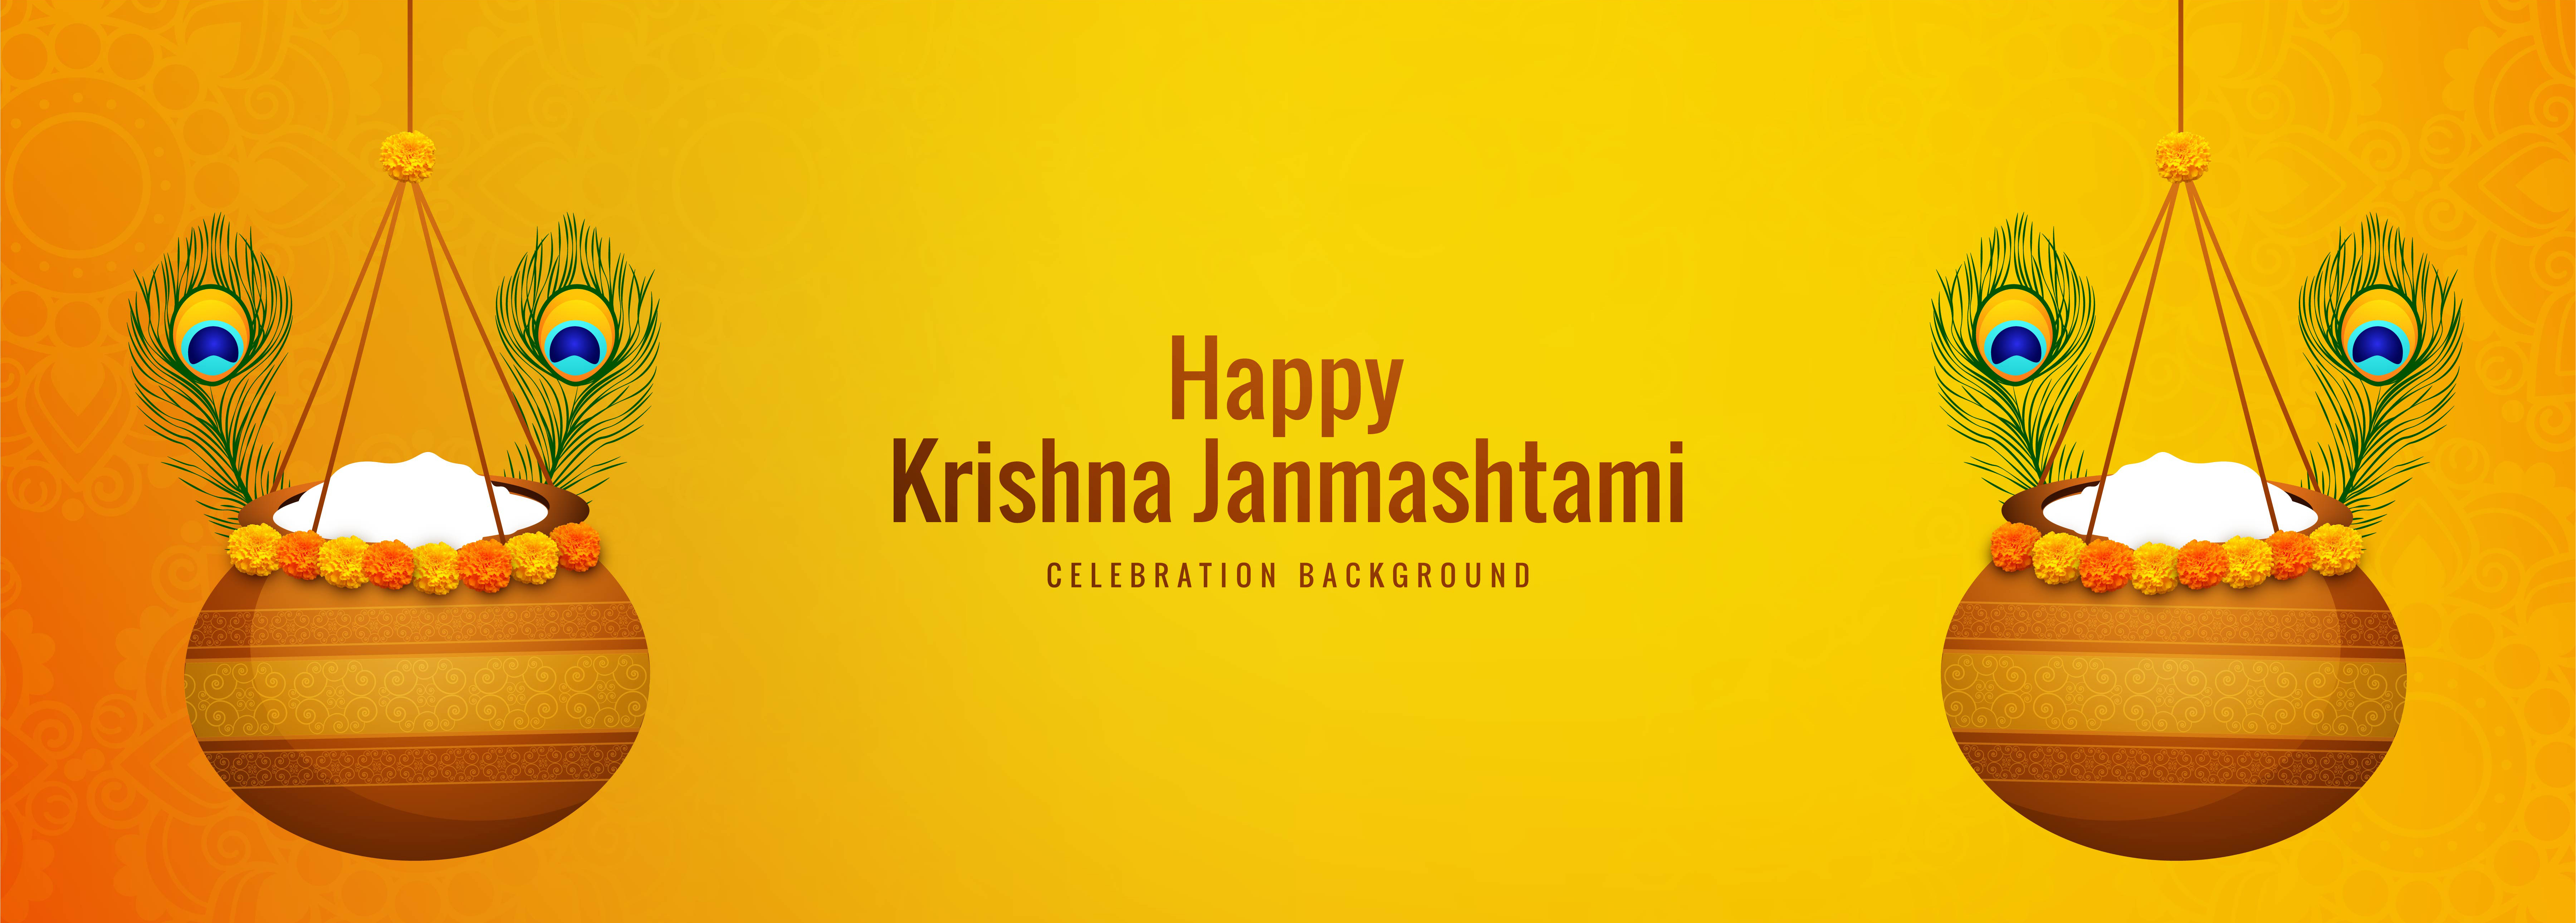 Happy Janmashtami Two Hanging Pots Banner Background